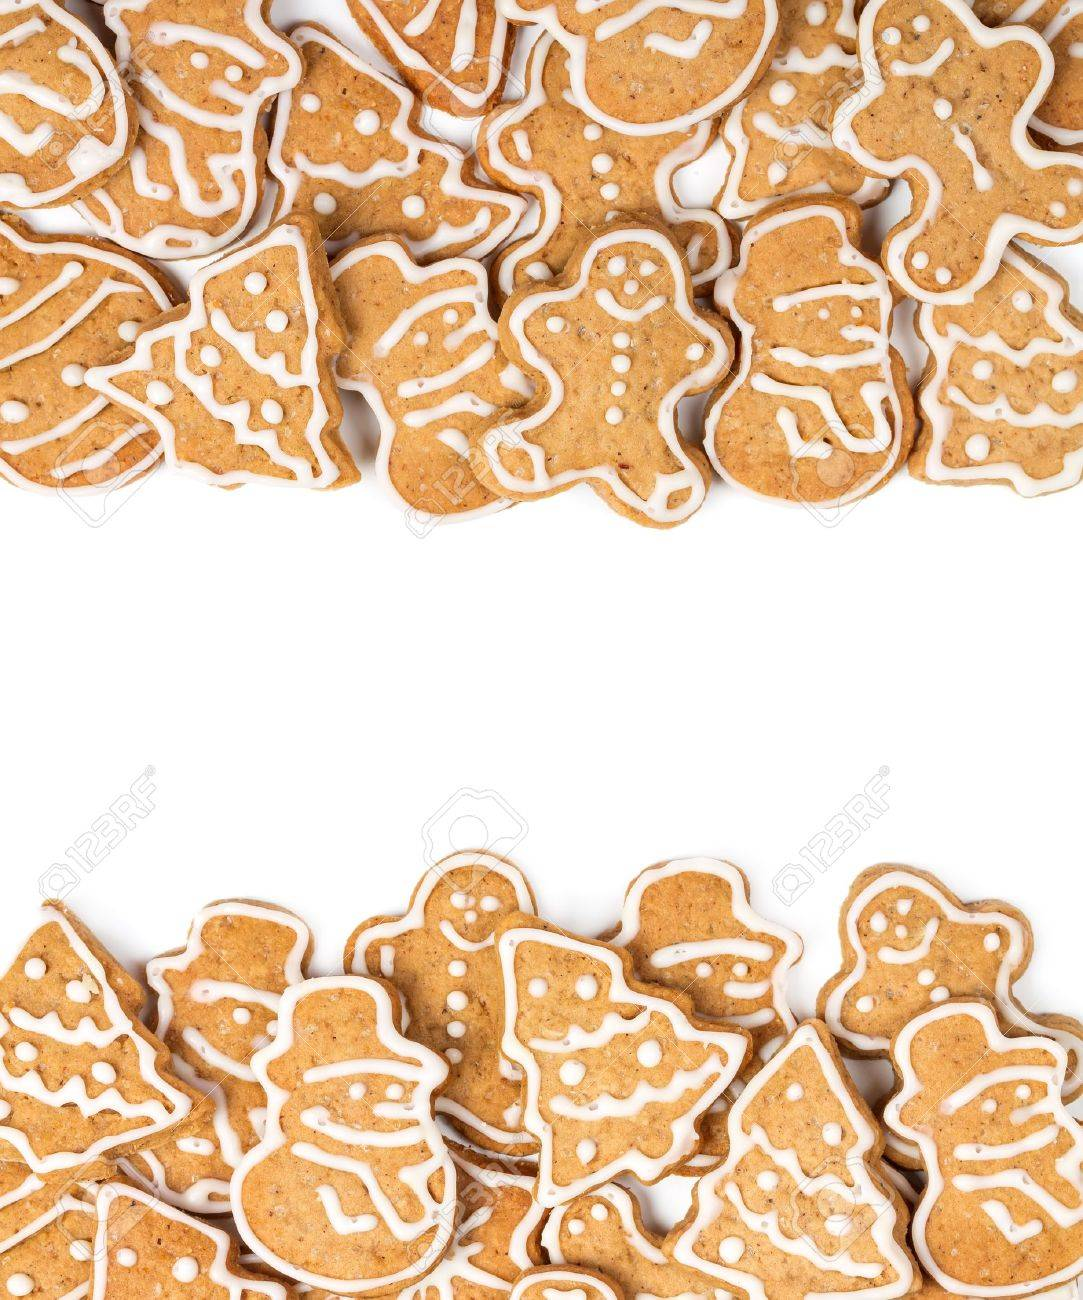 Christmas Cookies Different Form On A White Background Stock Photo ...